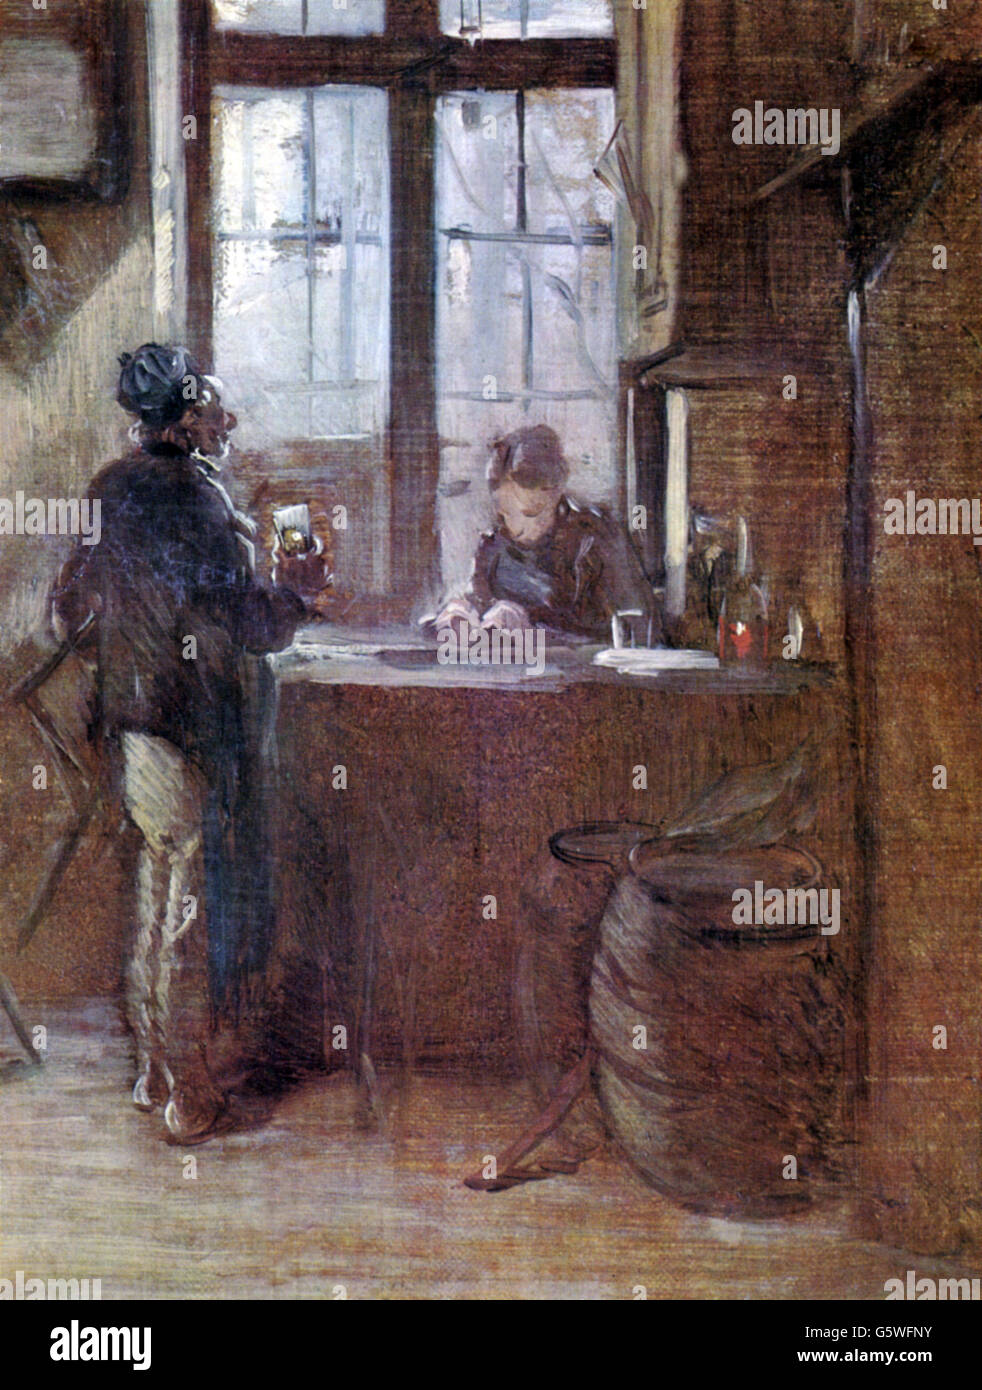 gastronomy, inns, scene at a tavern, painting, by Wilhelm Busch, (1832 - 1908), 19th century, 19th century, fine - Stock Image